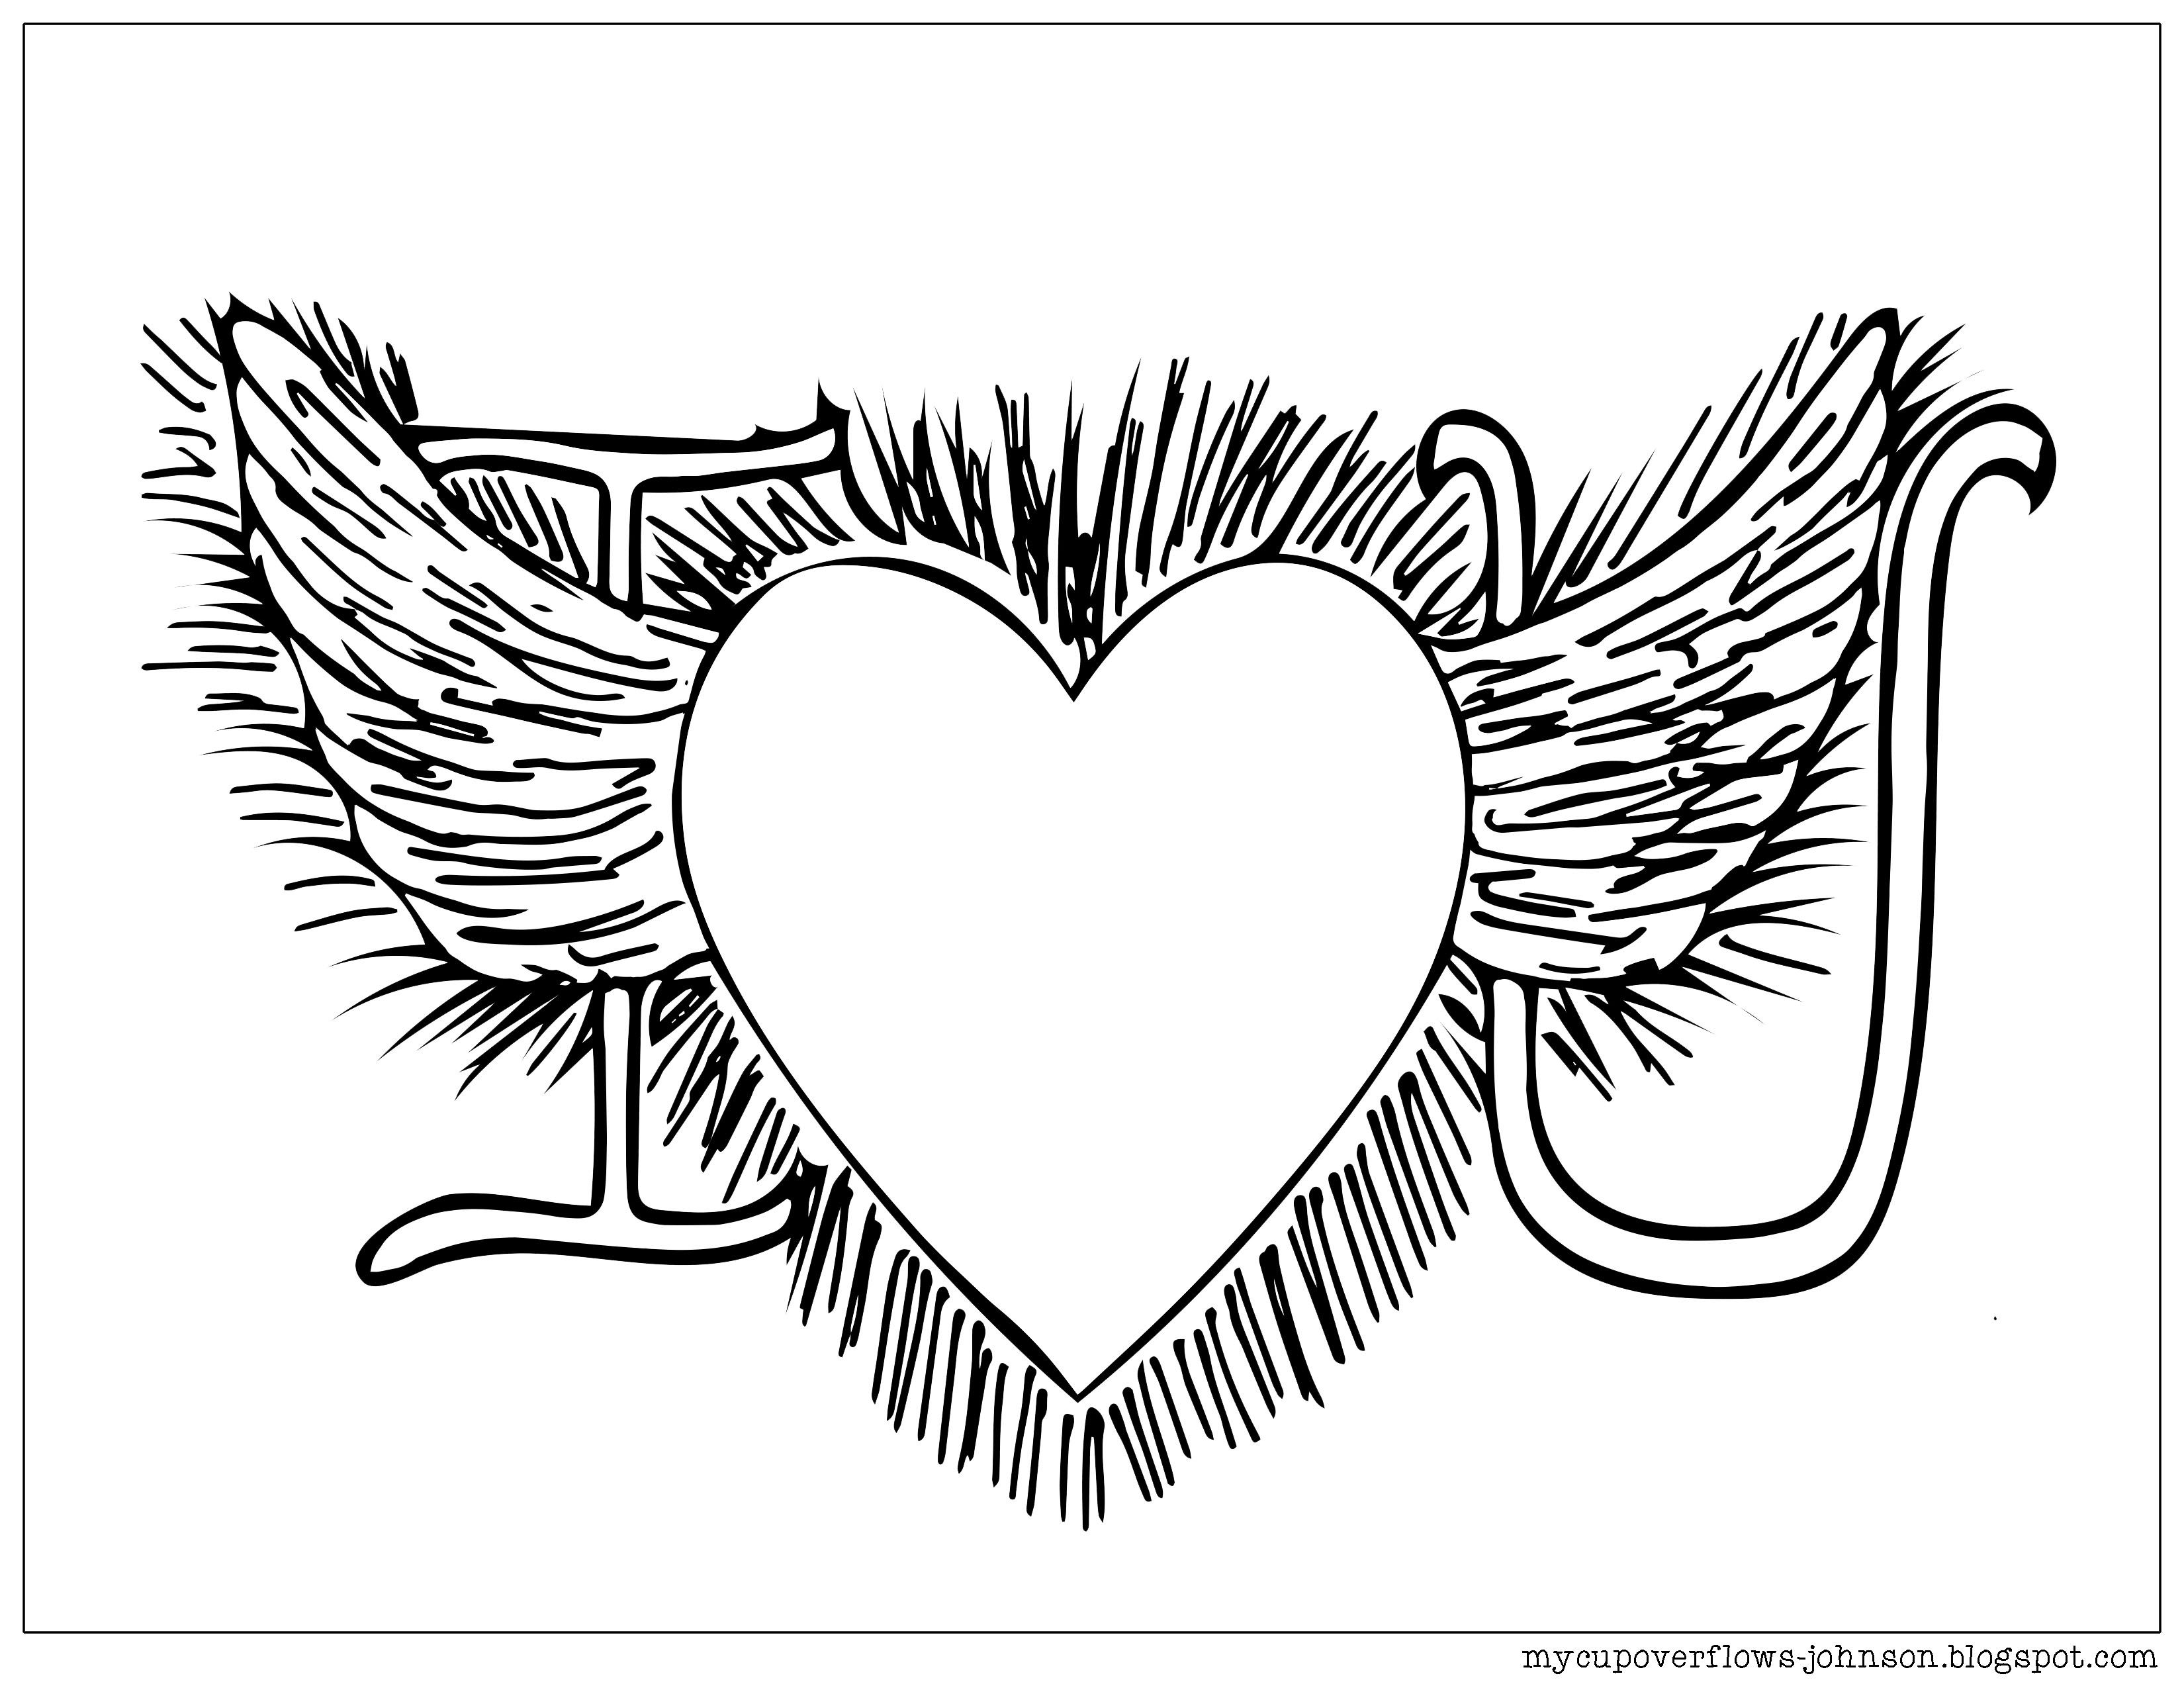 I Love You | Coloring Pages | Pinterest | Child sponsorship